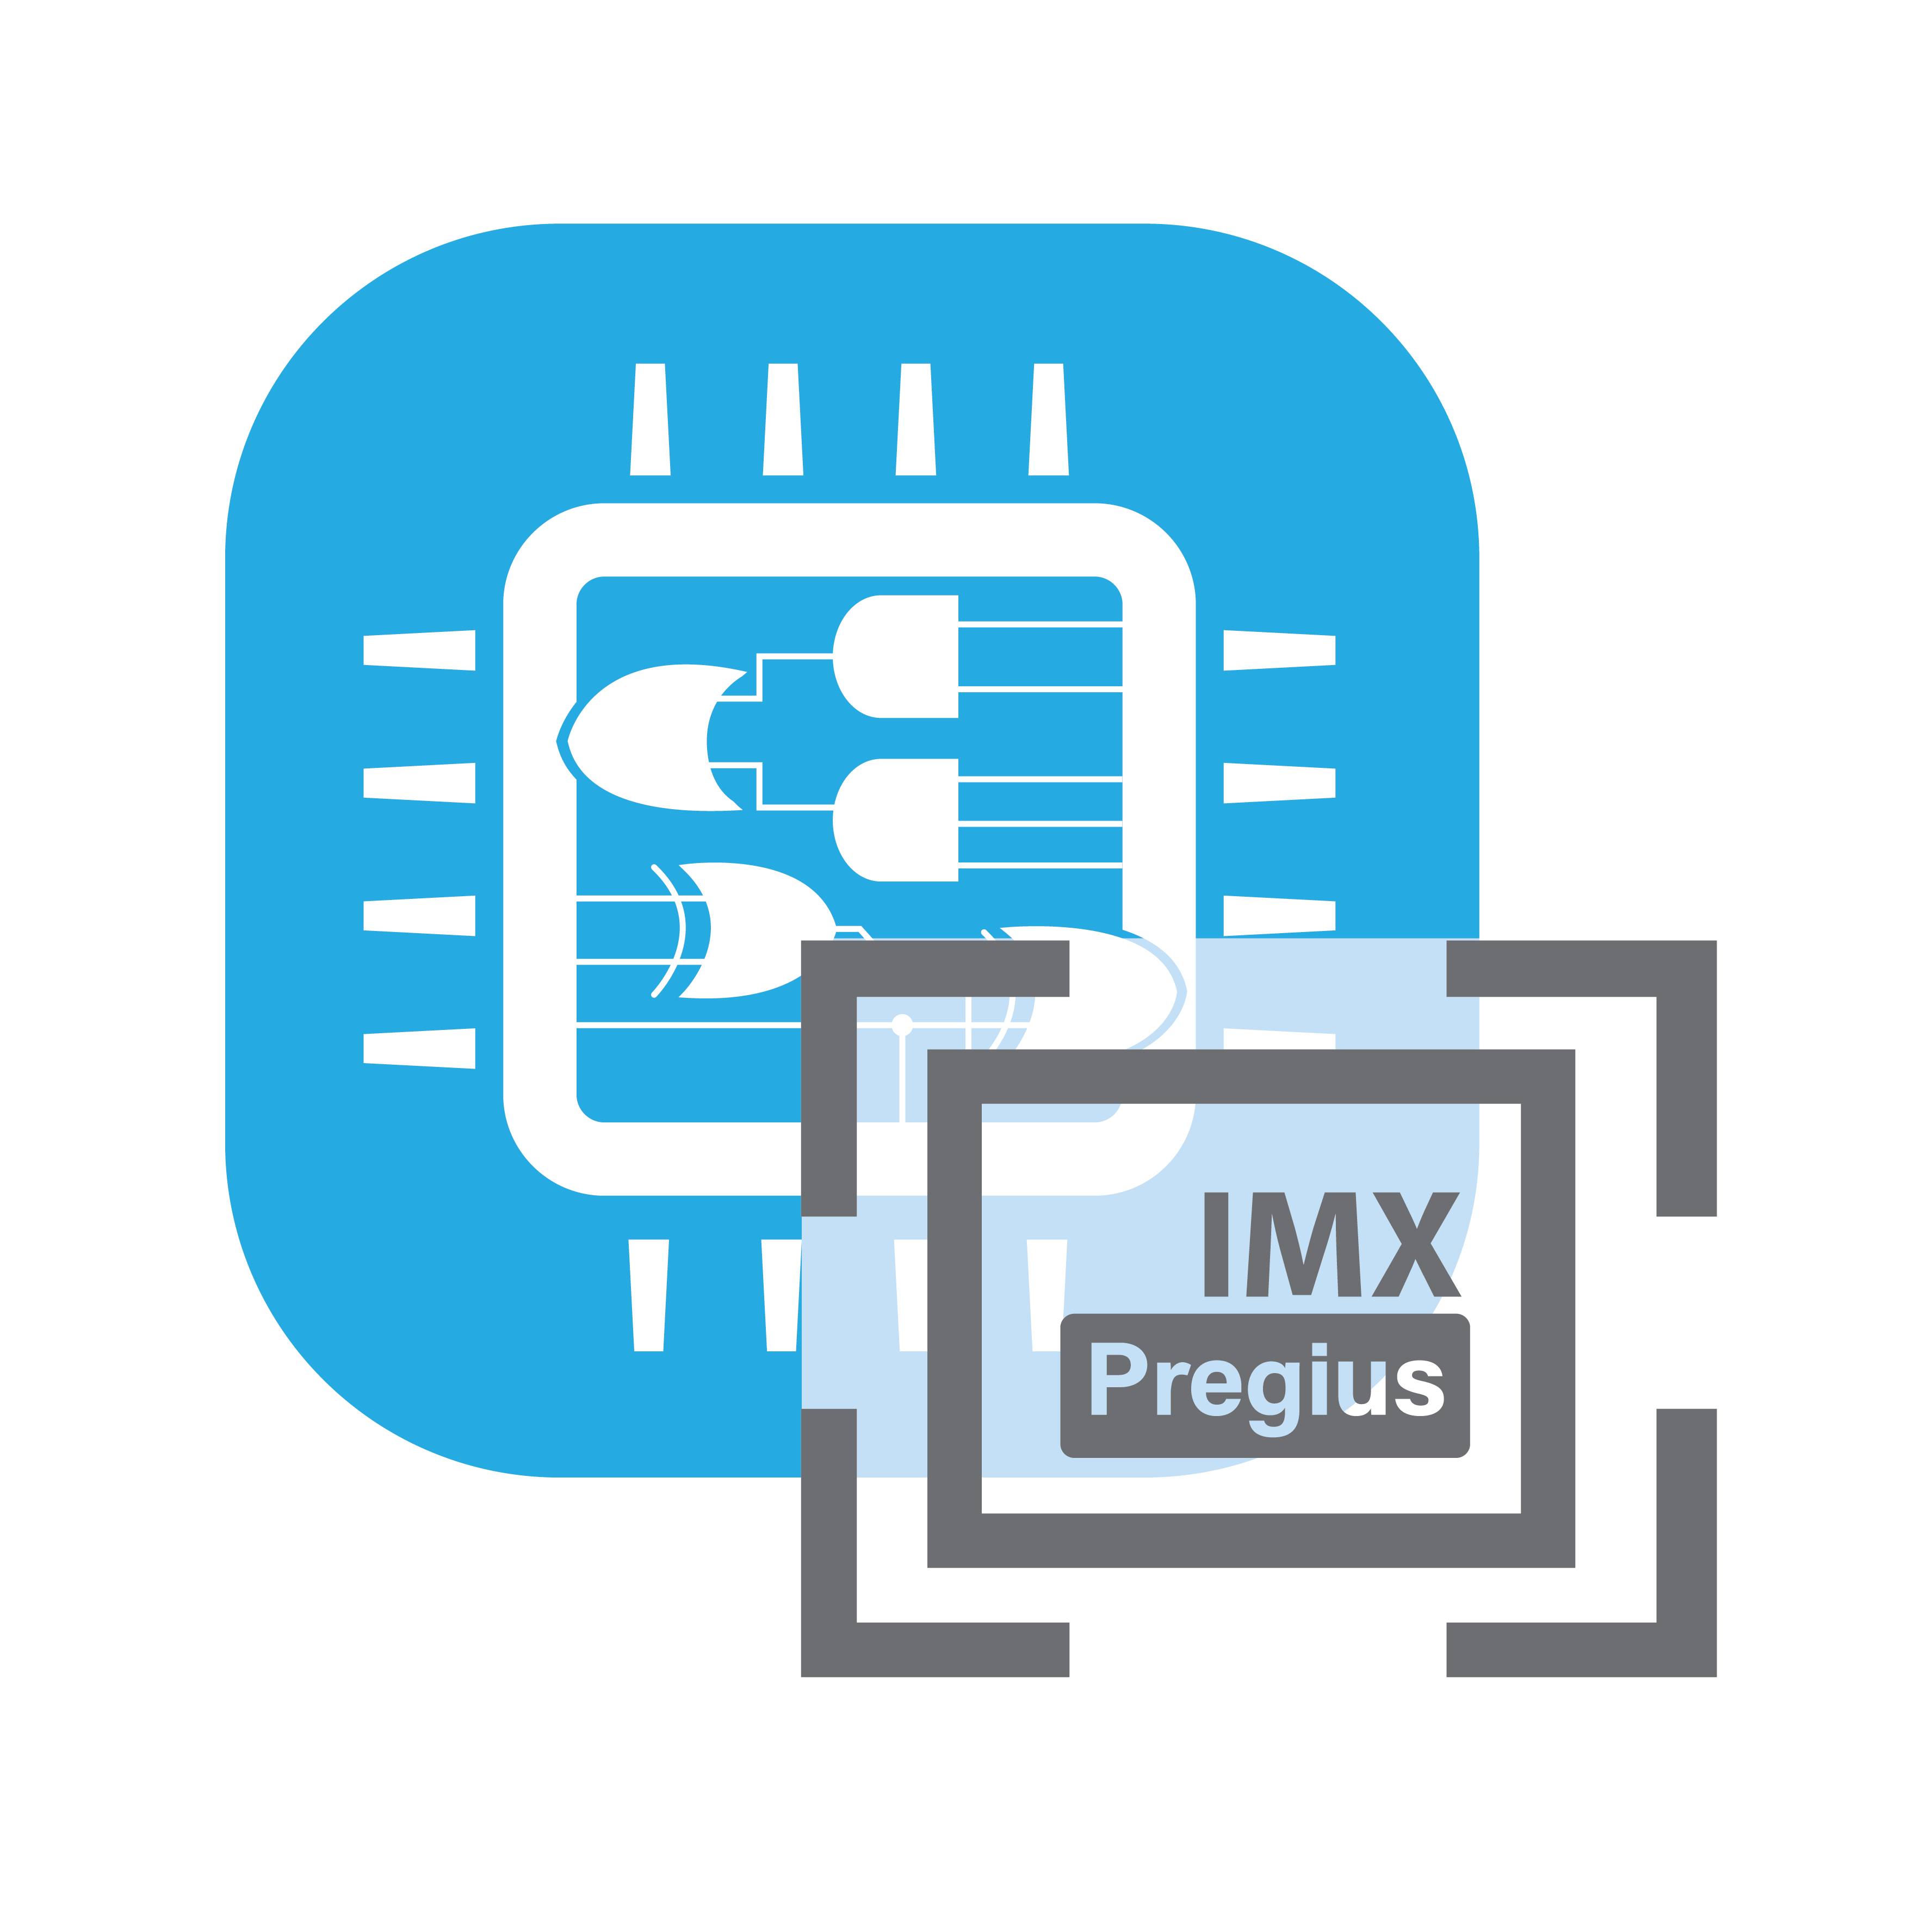 IMX Pregius IP Core